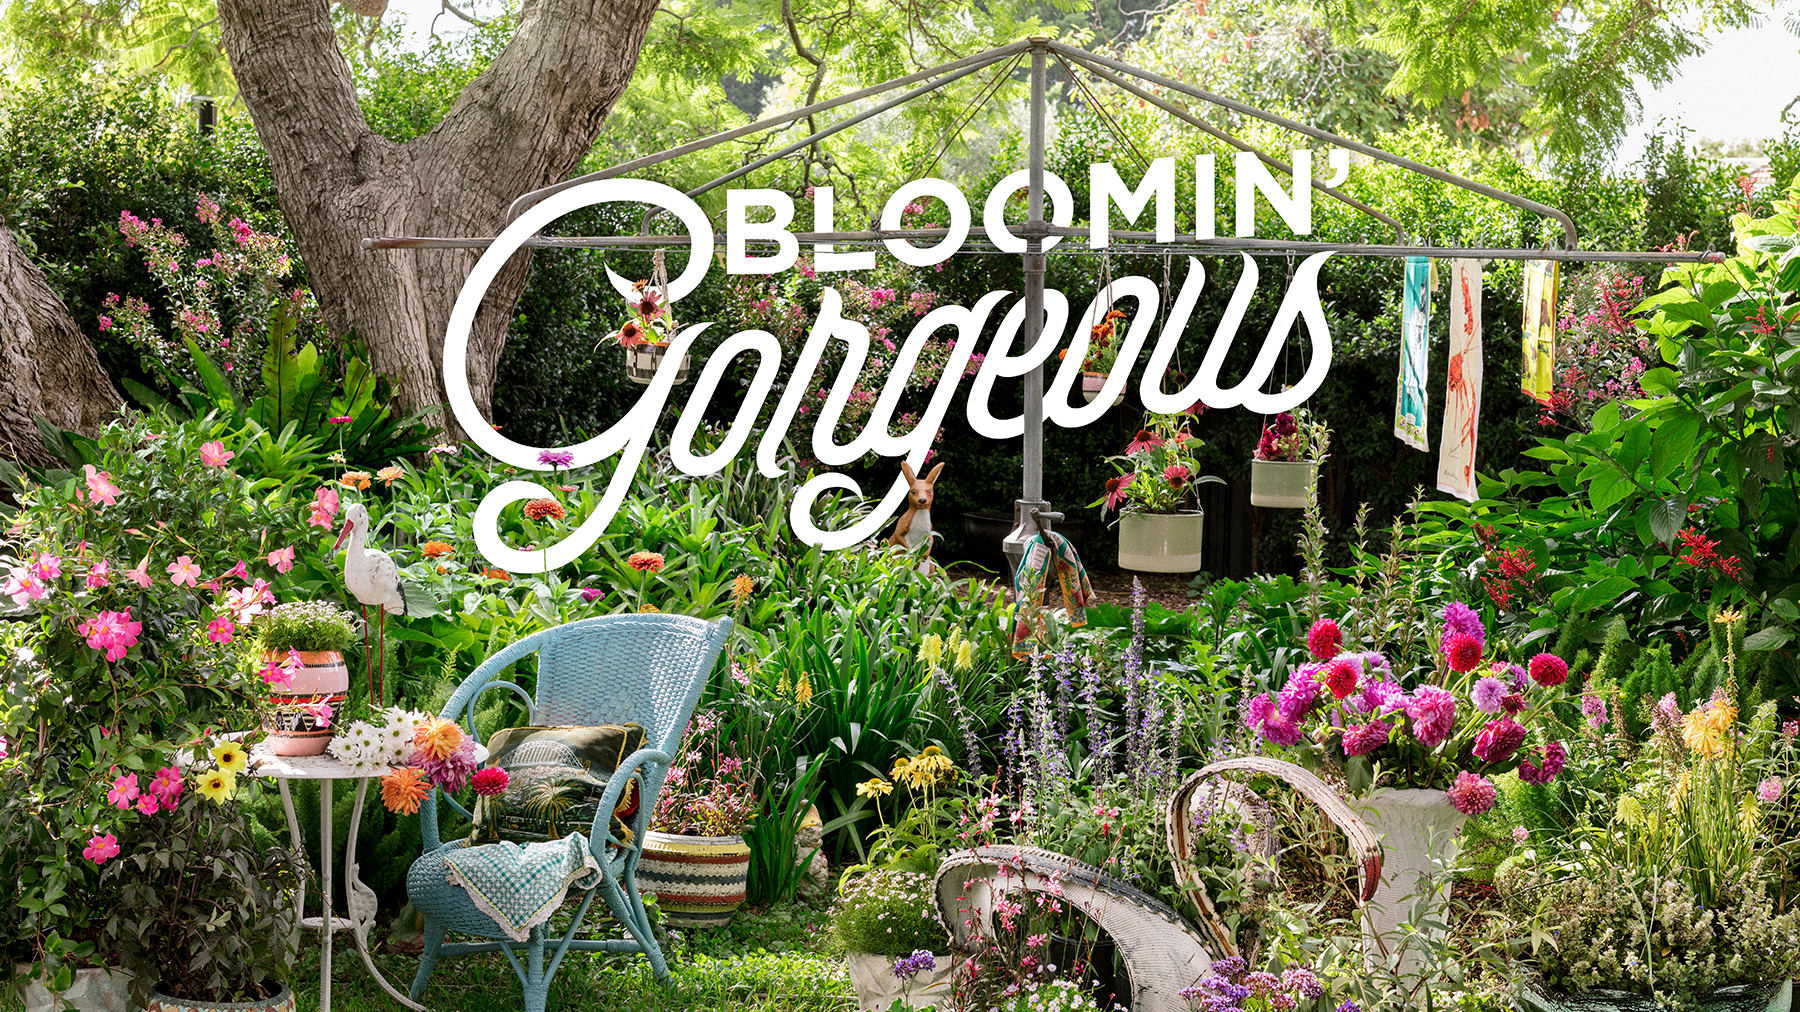 Bloomin' Gorgeous - If your guilty pleasure is Aussie kitsch then you'll bloomin' love this. With blousy flowers and bright colours, it will have you shouting 'Hello, Possums!' over the fence.